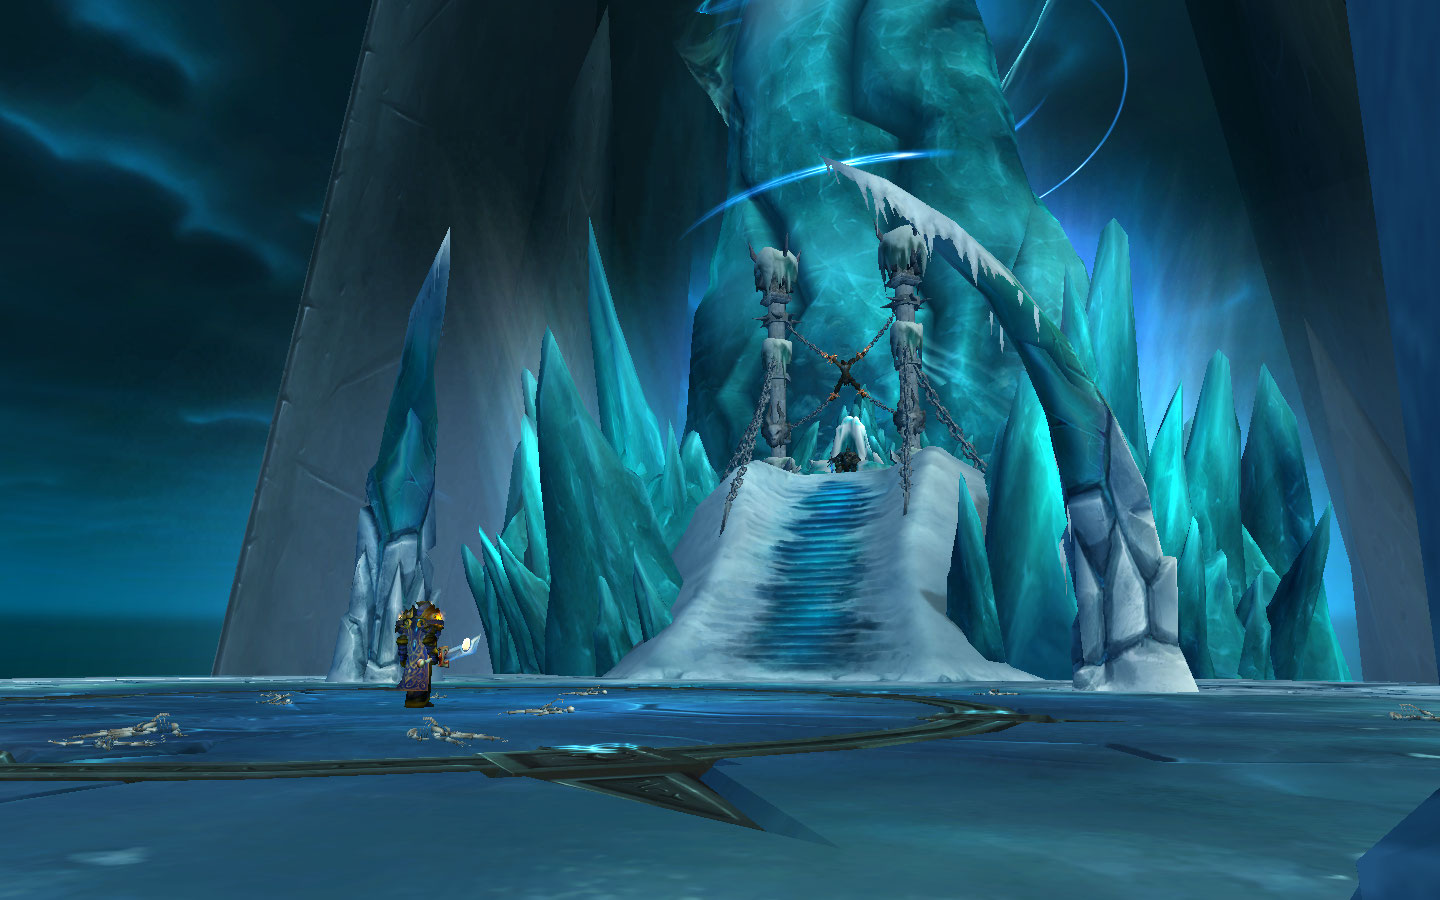 Knights Of The Frozen Throne Wallpaper: FANDOM Powered By Wikia